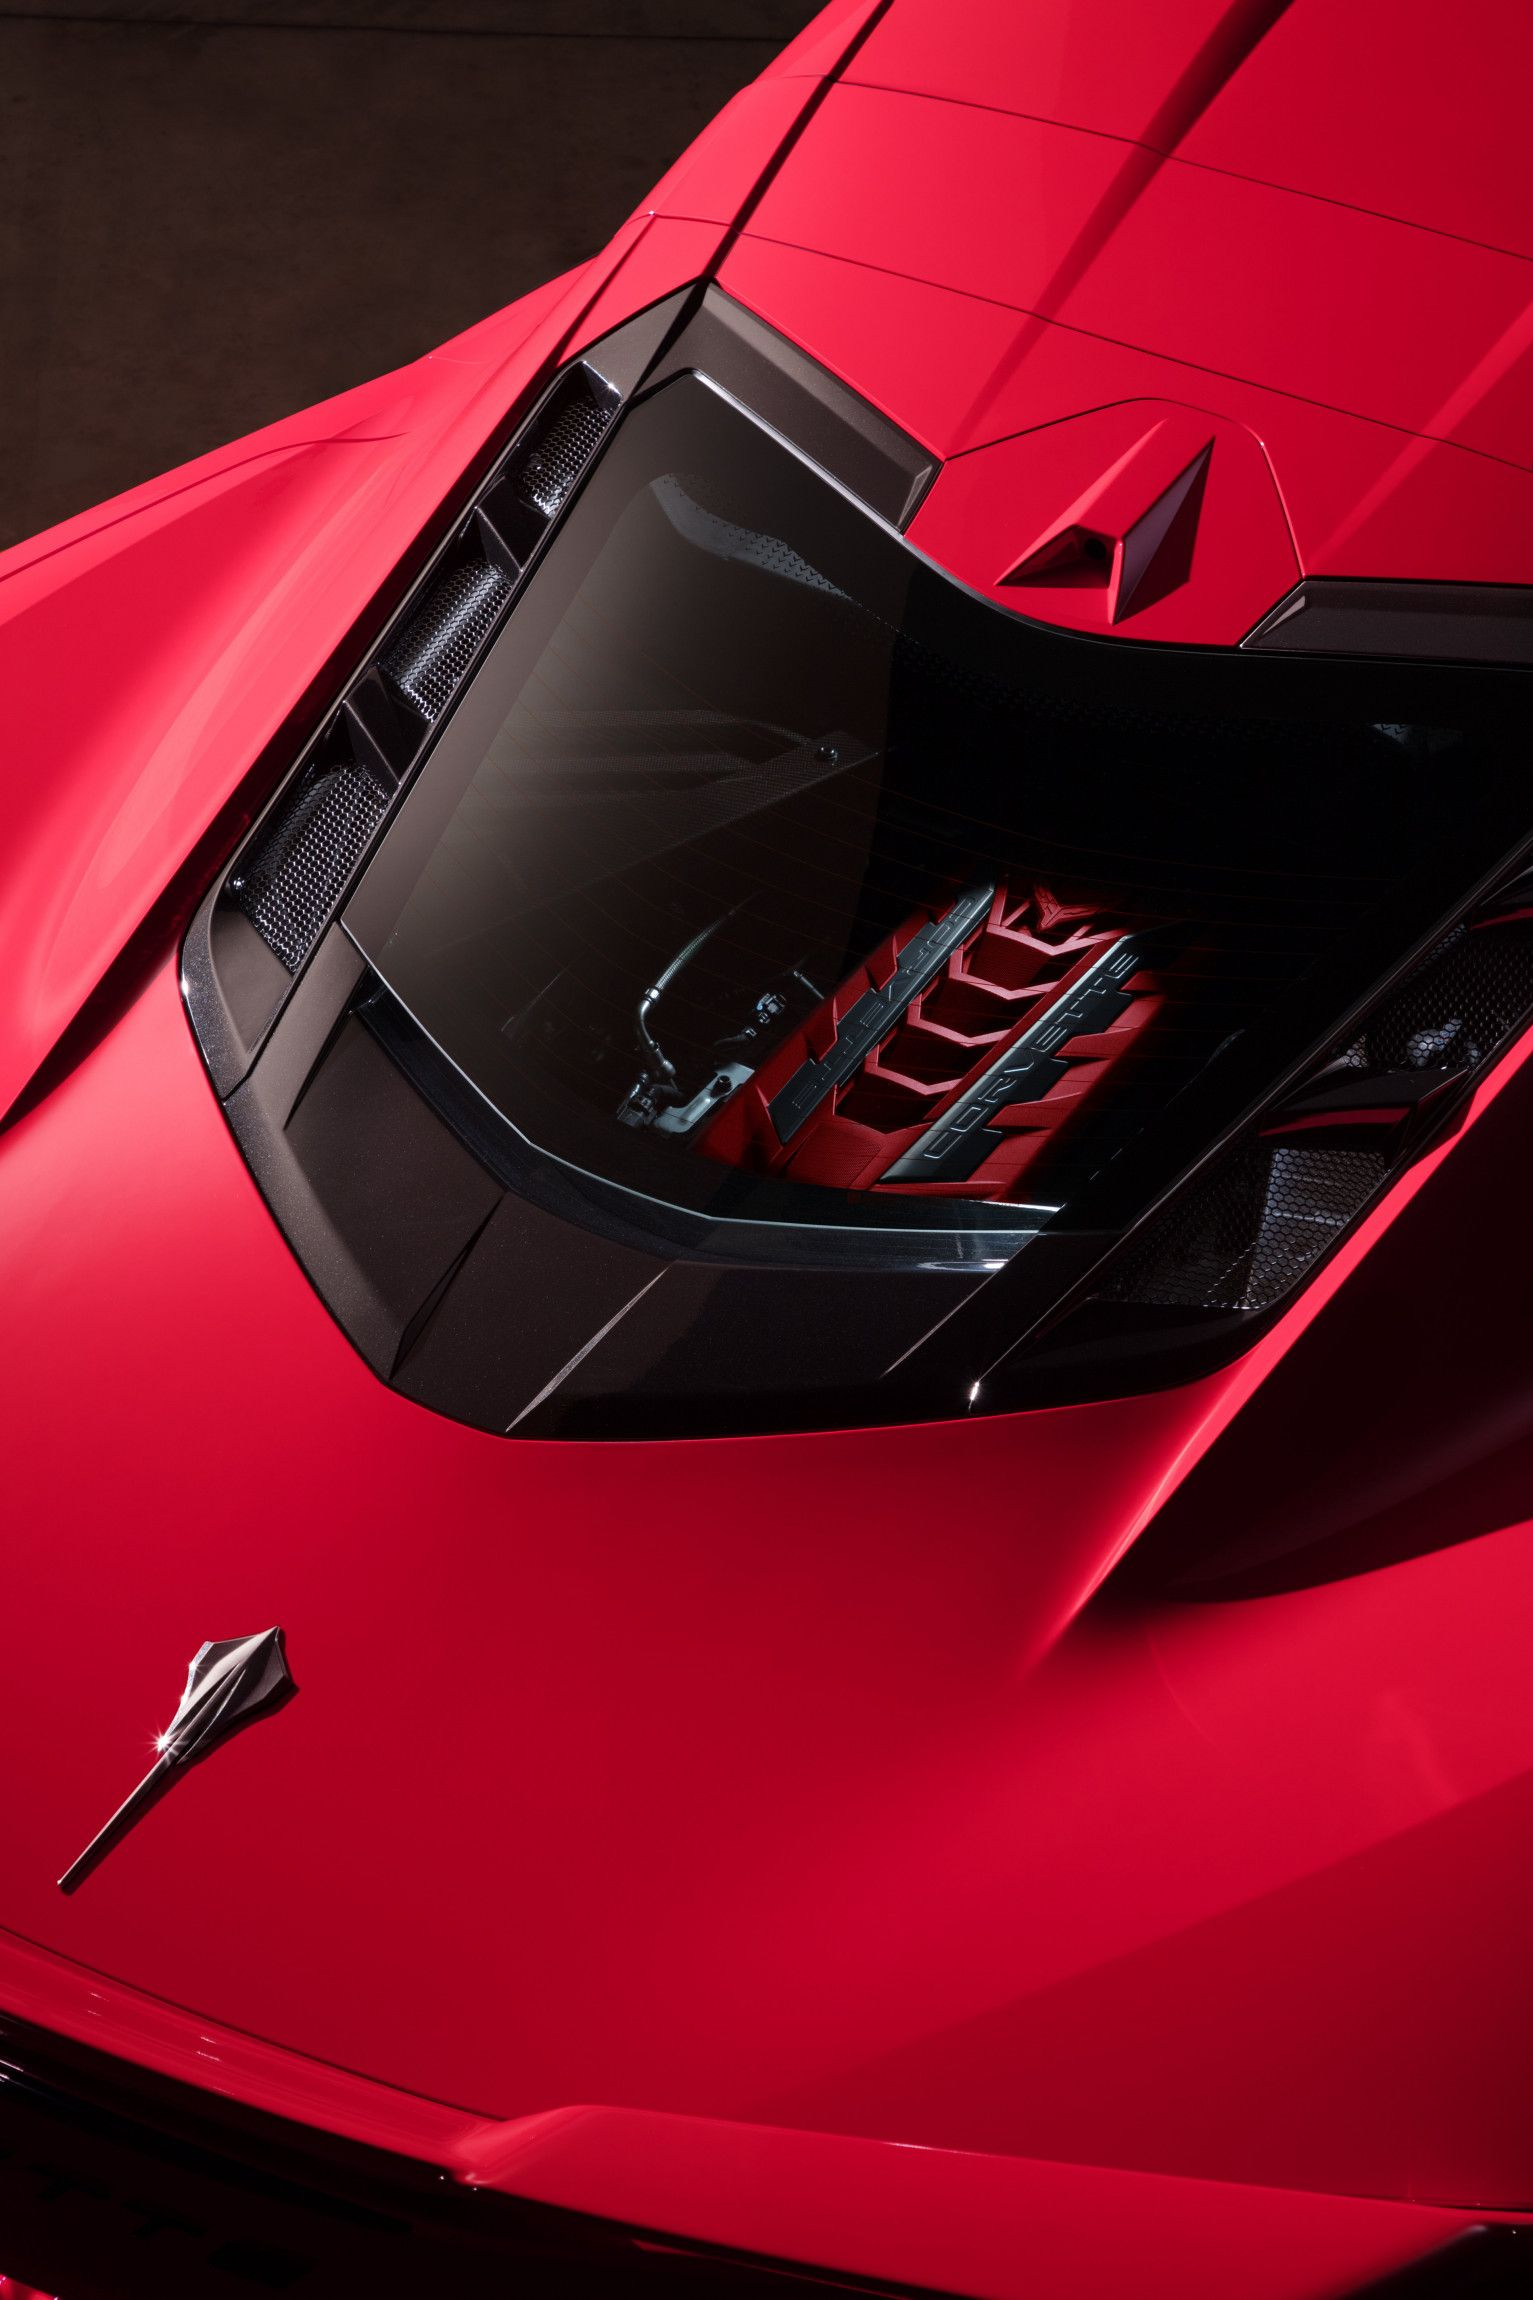 Zora S Dream Fulfilled Chevrolet Unveils 2020 C8 Corvette Stingray Mid Engine Power And Technolo Chevrolet Corvette Stingray Corvette Stingray Chevy Corvette